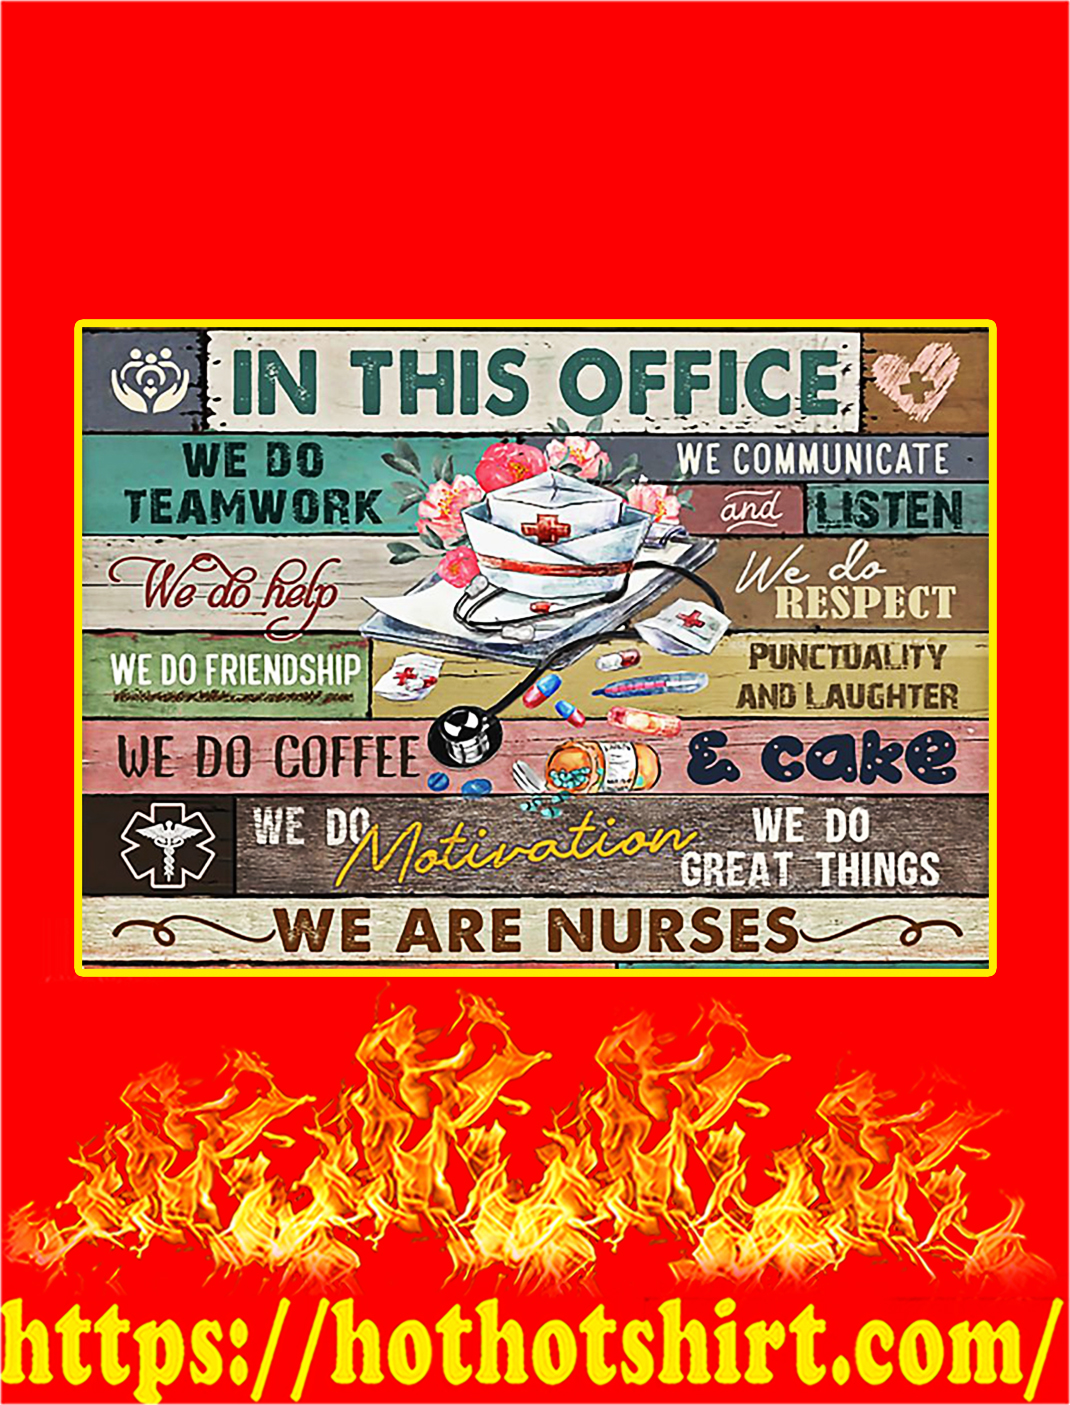 In This Office We Are Nurses Poster - A4